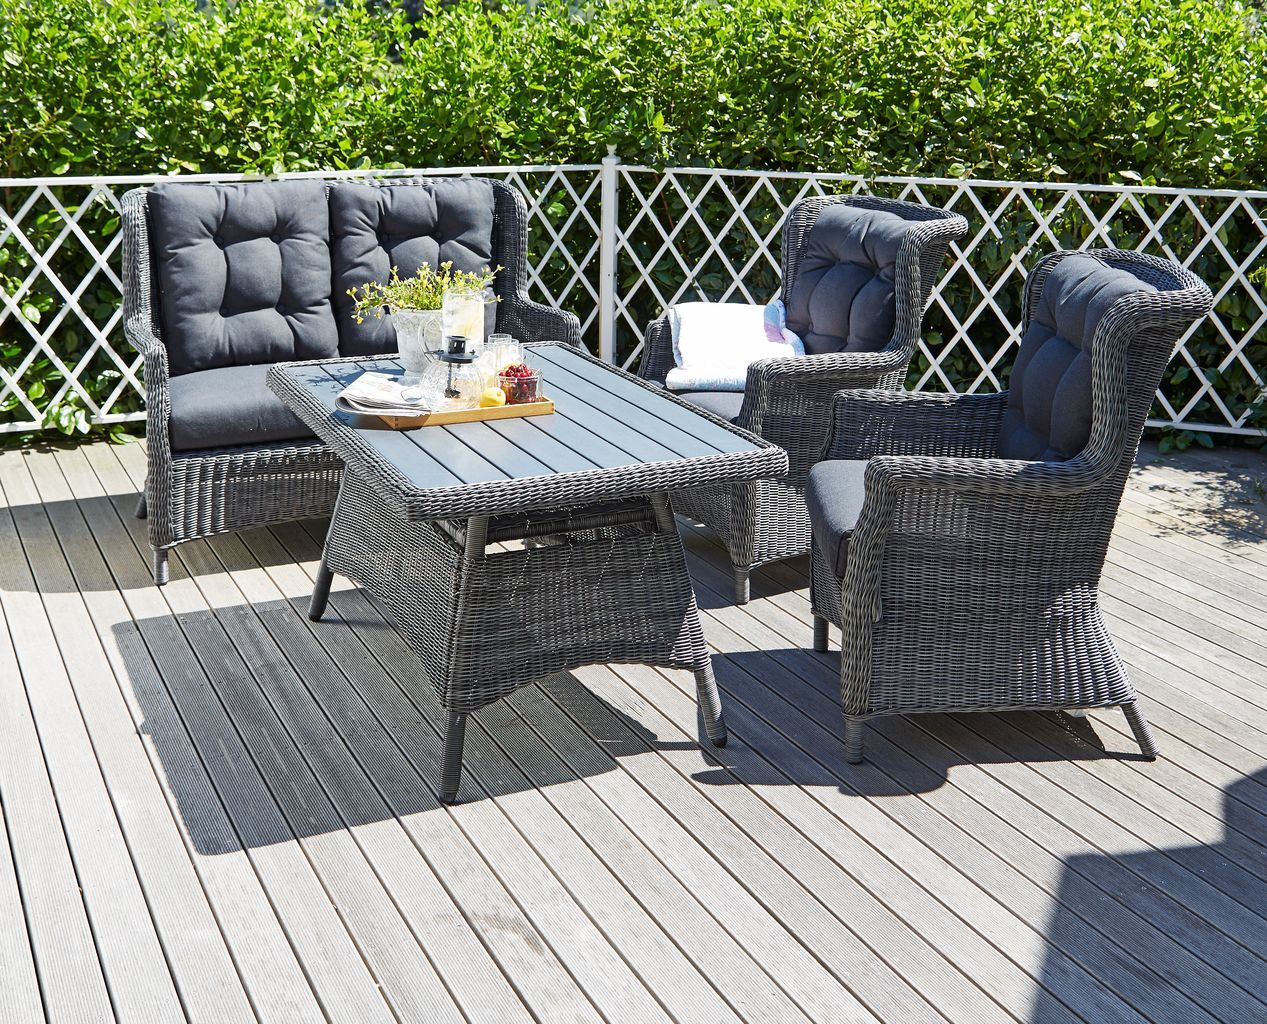 Garden lounge furniture with matching table to complete the